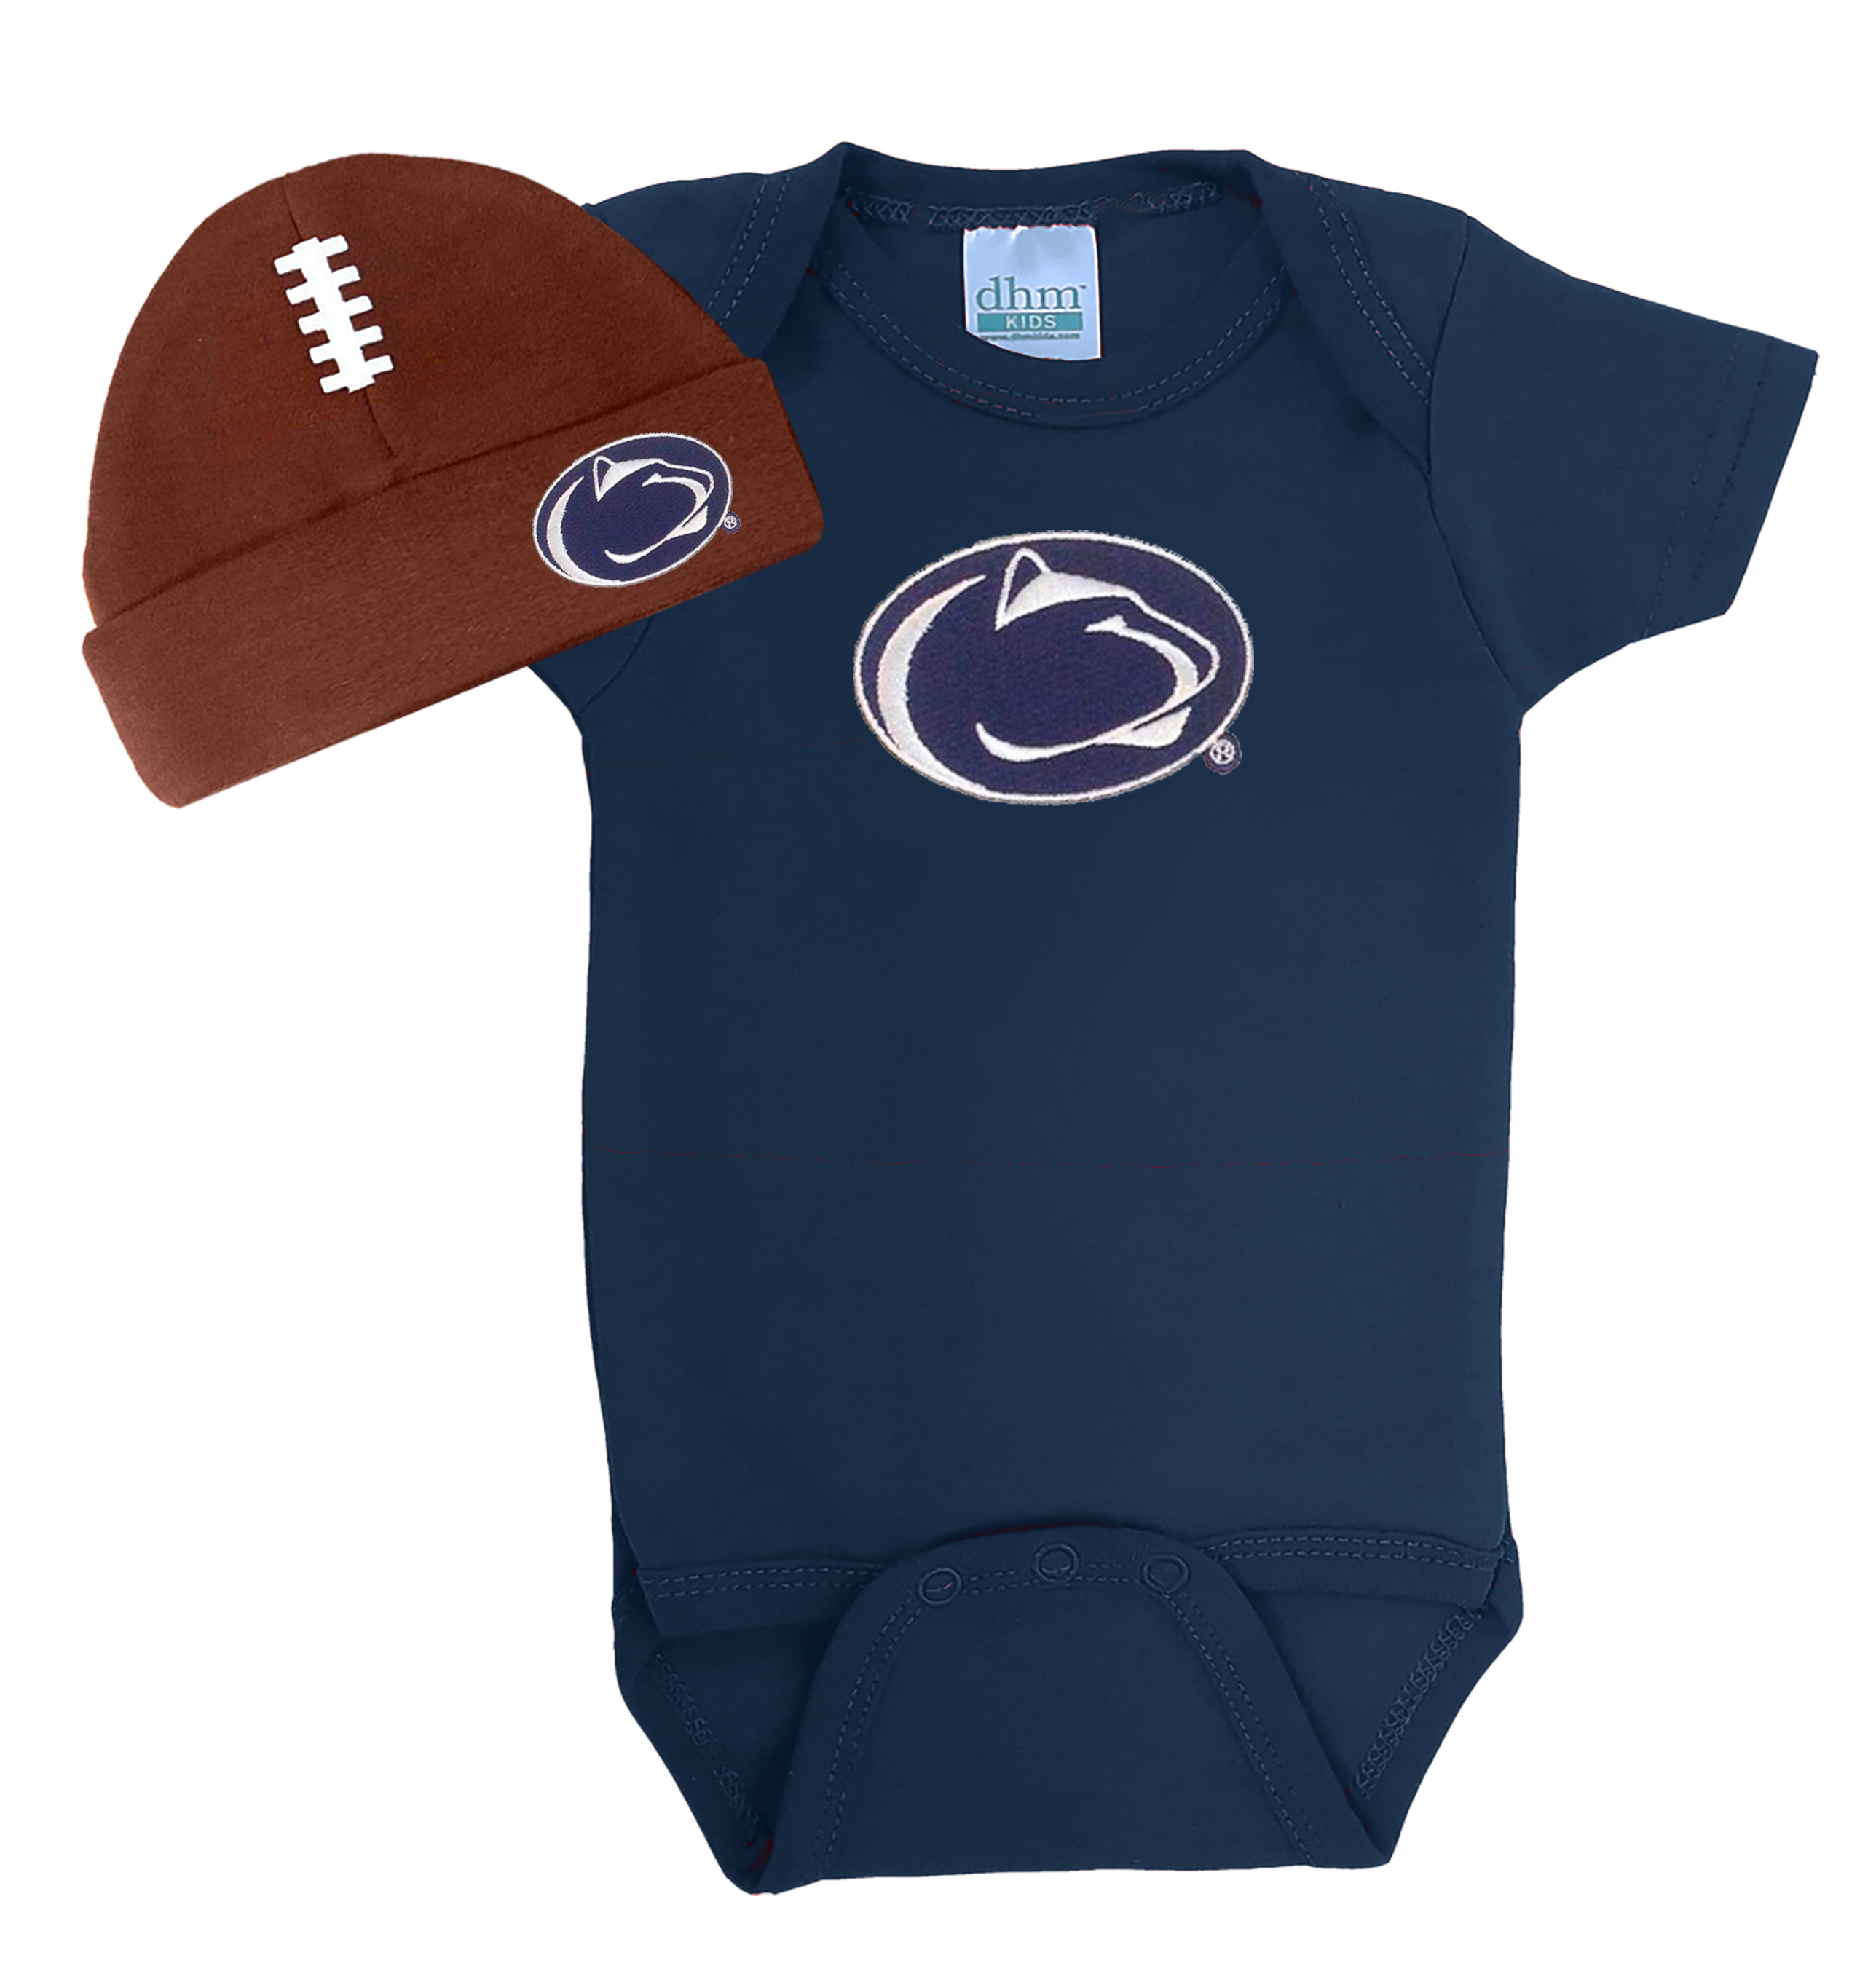 Penn State Nittany Lions Football Cap and Onesie Baby Set